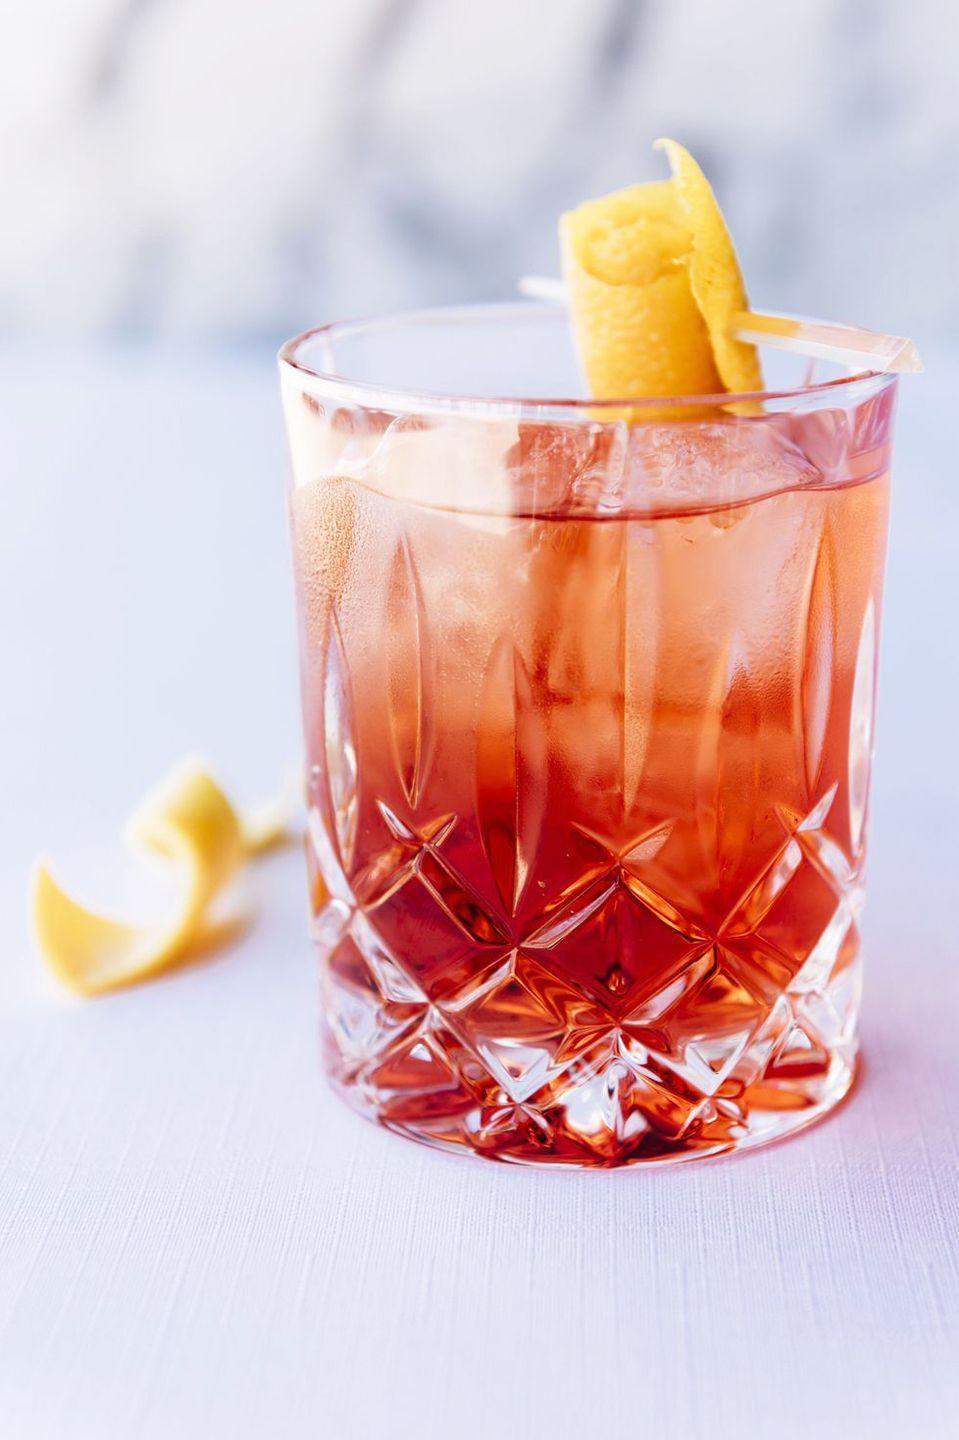 "<p><strong>Ingredients:</strong><br></p><p>1 oz. Plymouth Gin</p><p>1 oz. Campari</p><p>1 oz. Cocchi di Torino Vermouth</p><p><strong>Directions: </strong></p><p>Add all ingredients into mixing glass. Add ice and stir for 20 seconds. Now strain into a glass, over fresh ice, and garnish with an orange peel. </p><p><em>Courtesy of <a href=""http://salutevegas.com/"" rel=""nofollow noopener"" target=""_blank"" data-ylk=""slk:Salute Trattoria Italiana"" class=""link rapid-noclick-resp"">Salute Trattoria Italiana</a></em></p>"